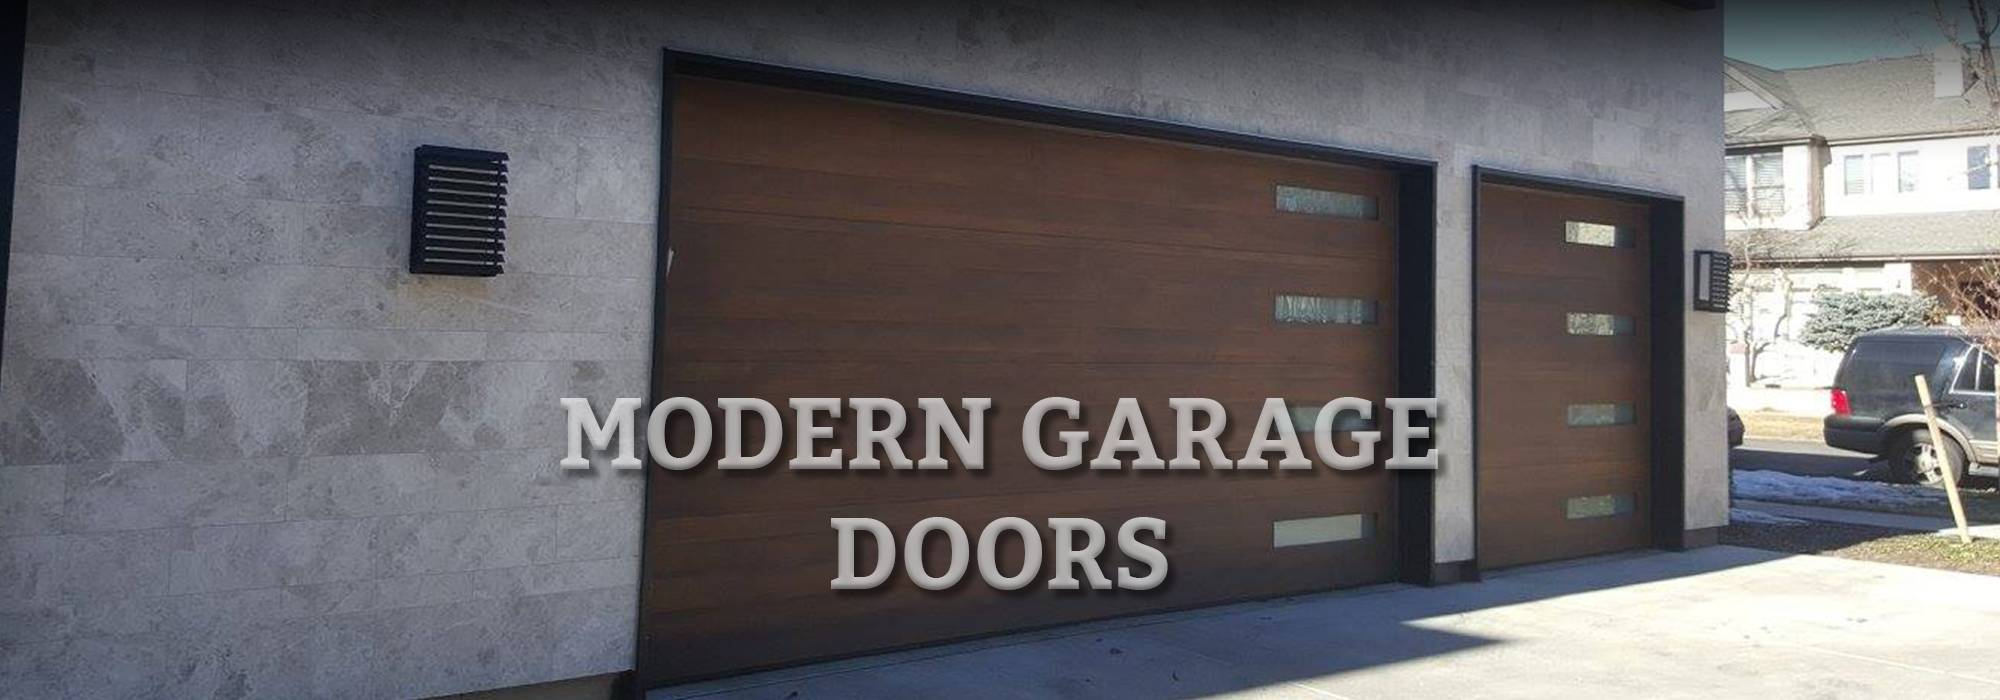 Overhead Door overhead door little rock images : Garage Doors Service | Custom Garage Doors | American Garage Door